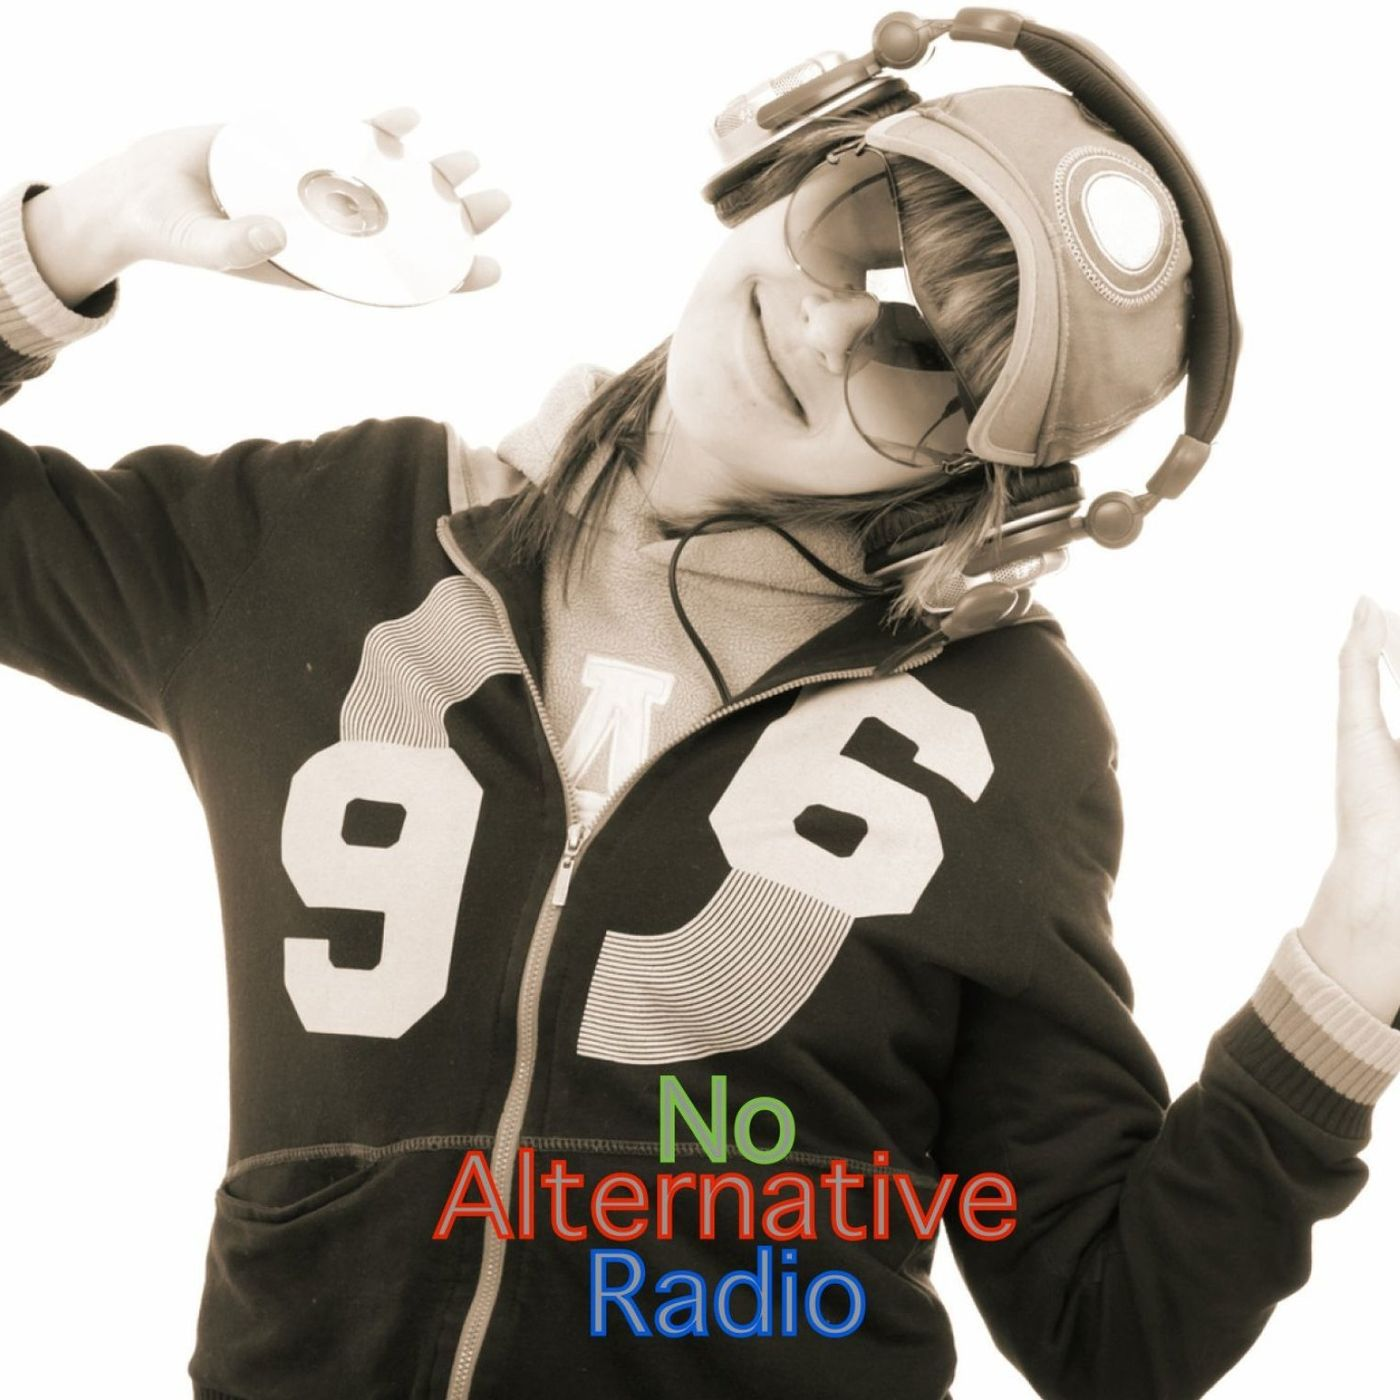 No Alternative Radio